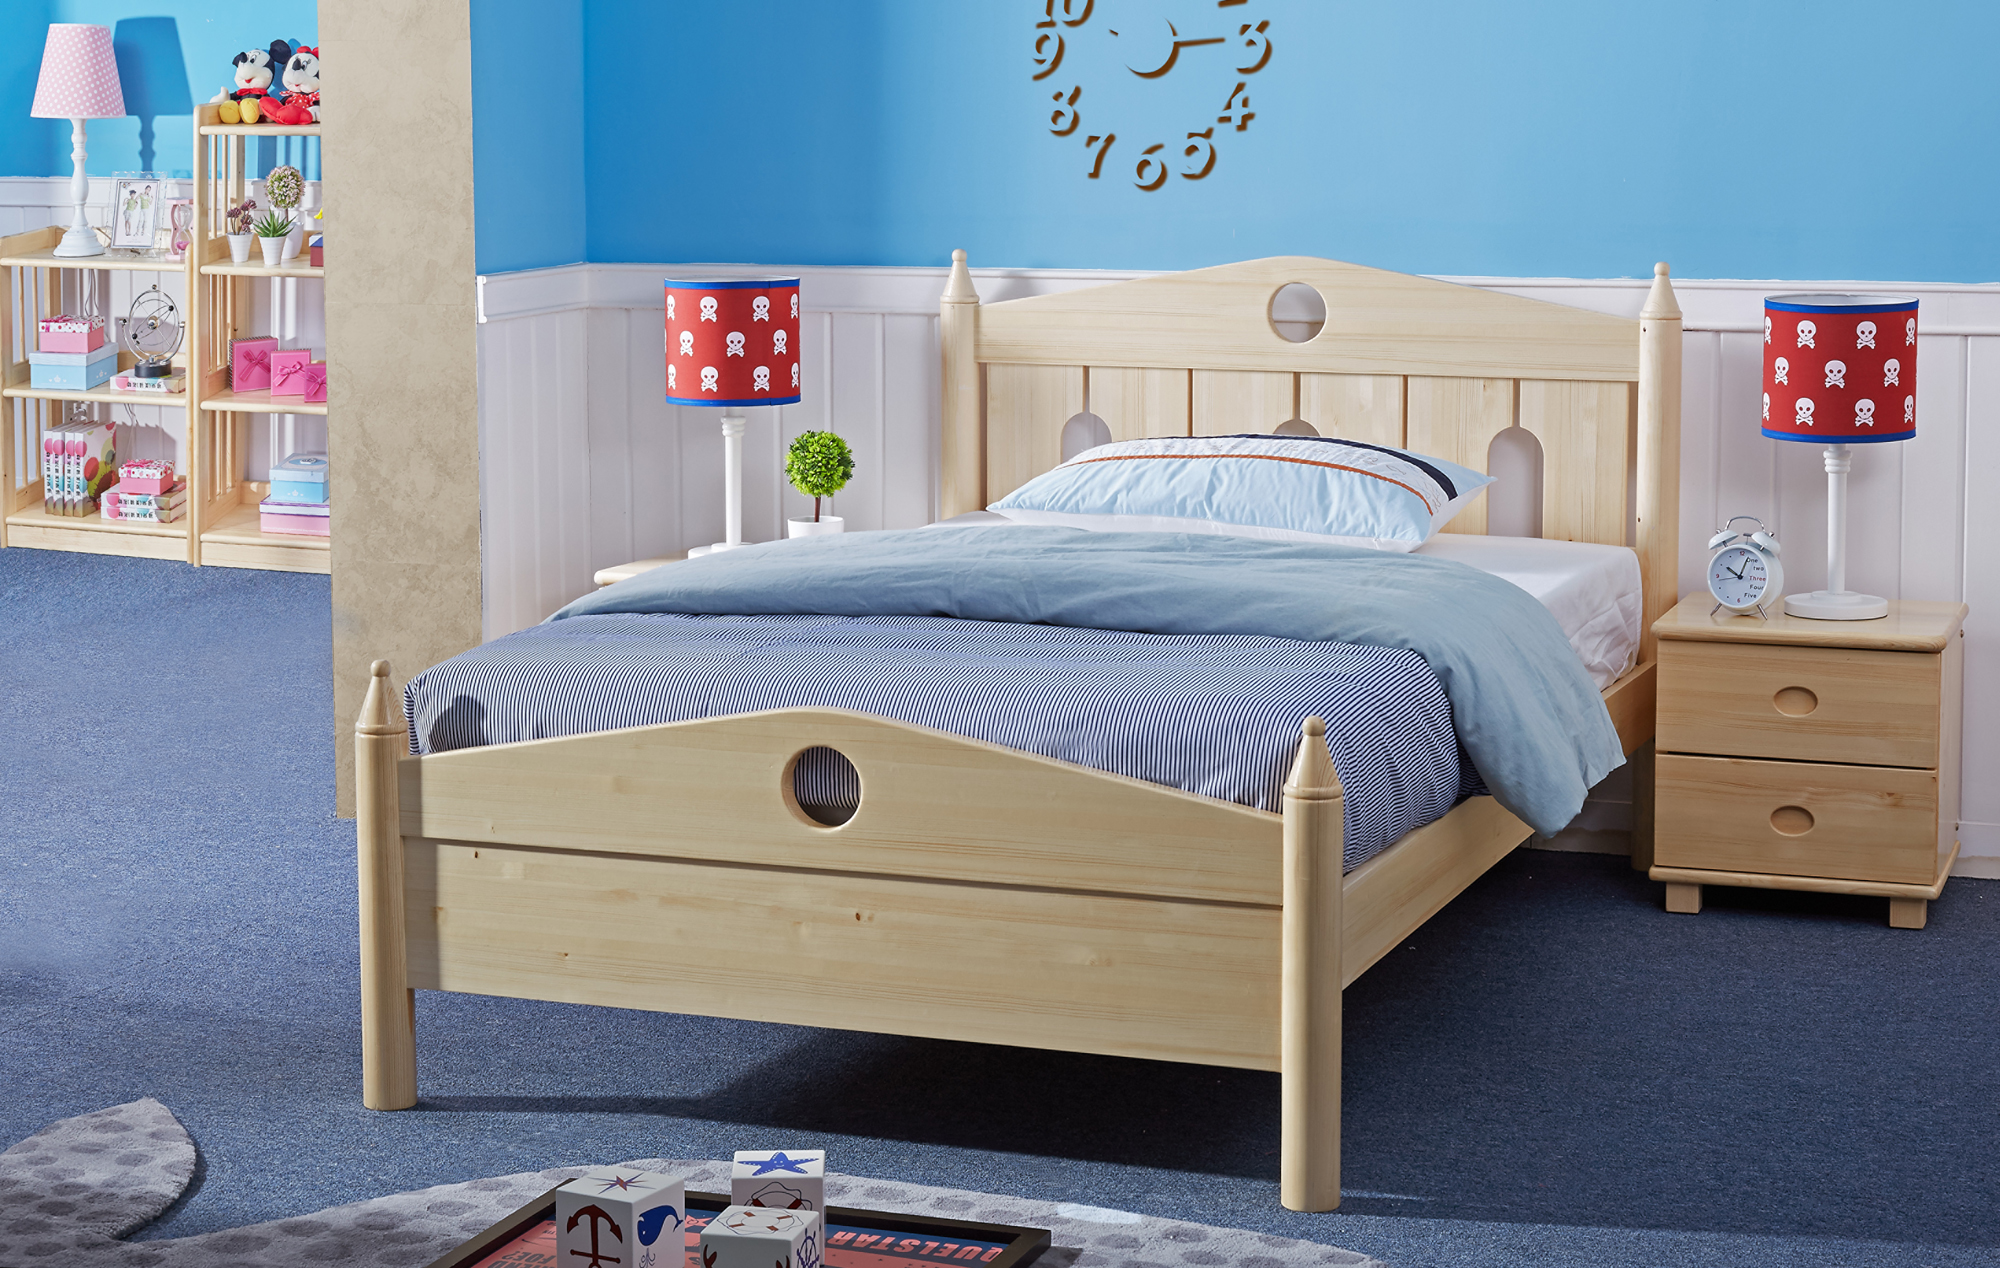 Finland caladoll loose bed solid wood bed simple modern children bed single bed double bed